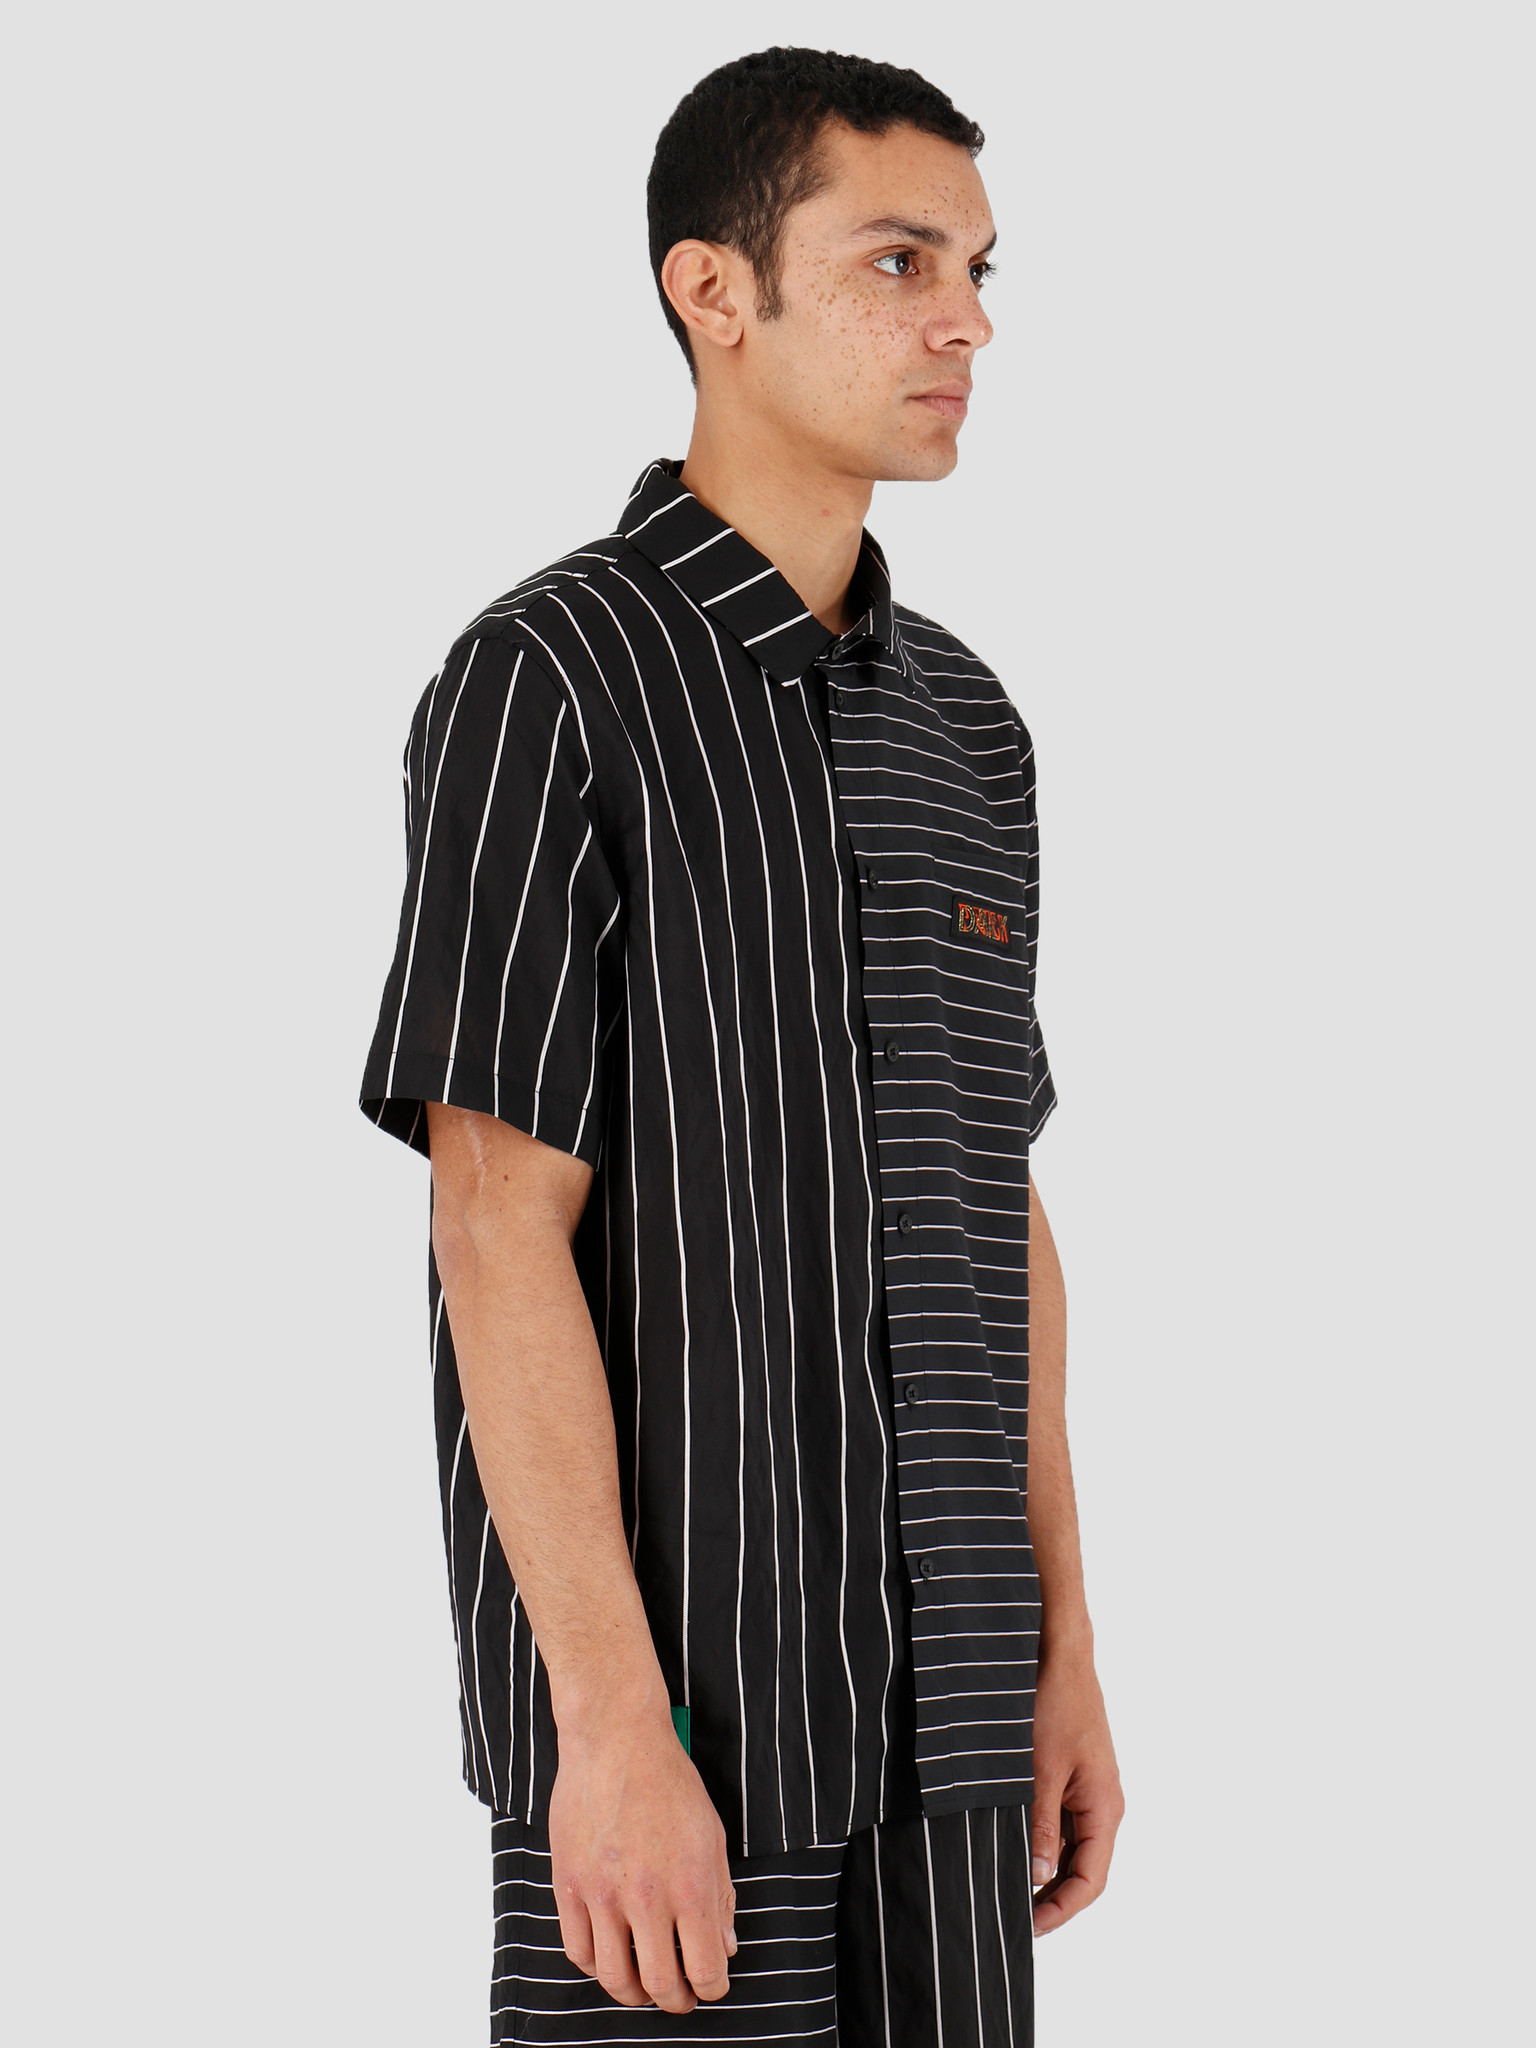 Daily Paper Daily Paper Hymie 3 Shirt Black Stripe 20S1SH07-01